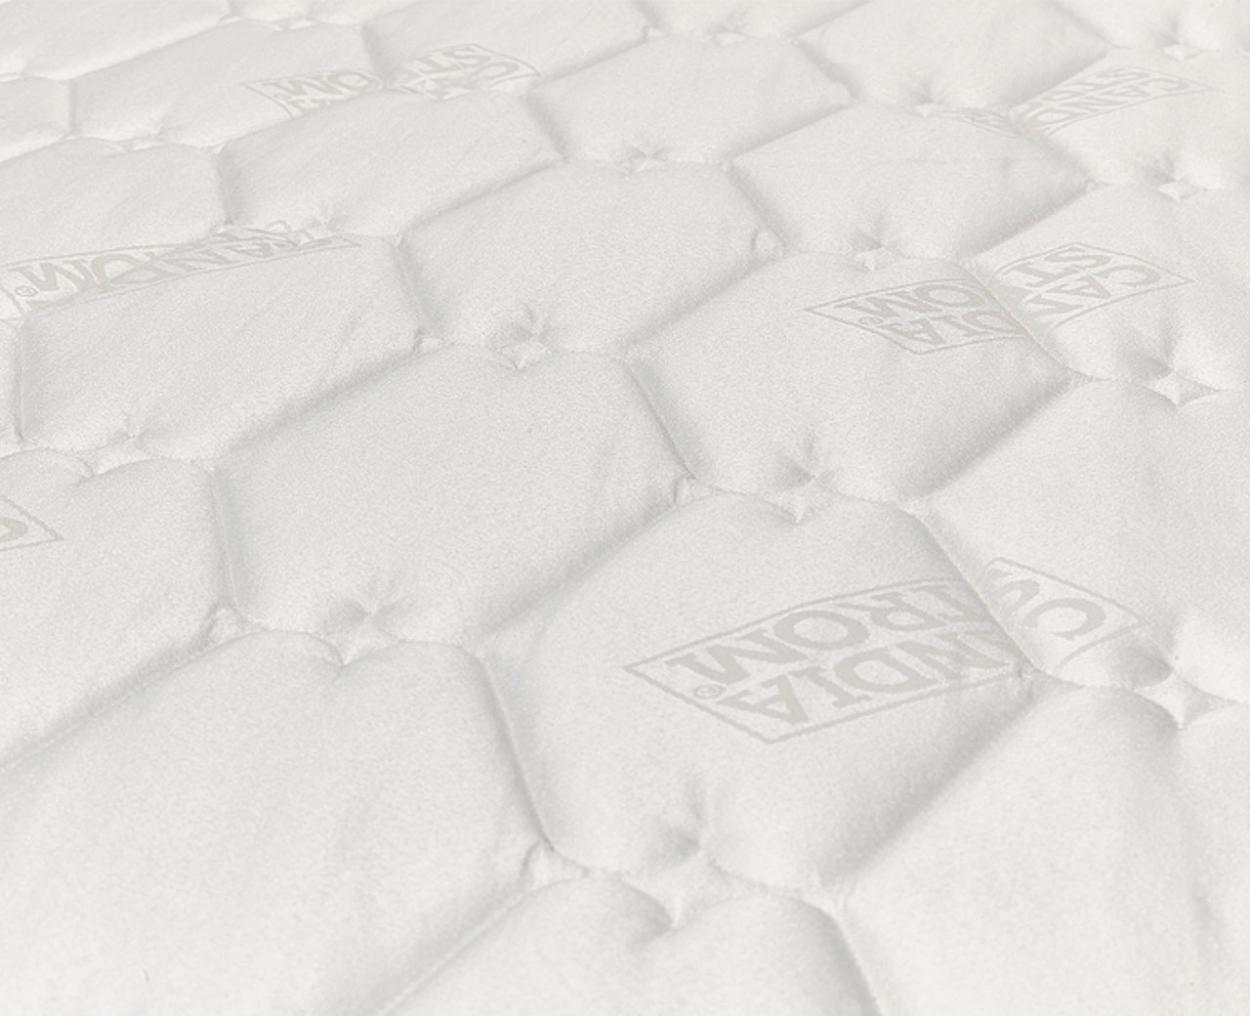 CandiaStrom - Mattress ASTRA - CLASSIC COLLECTION - Details